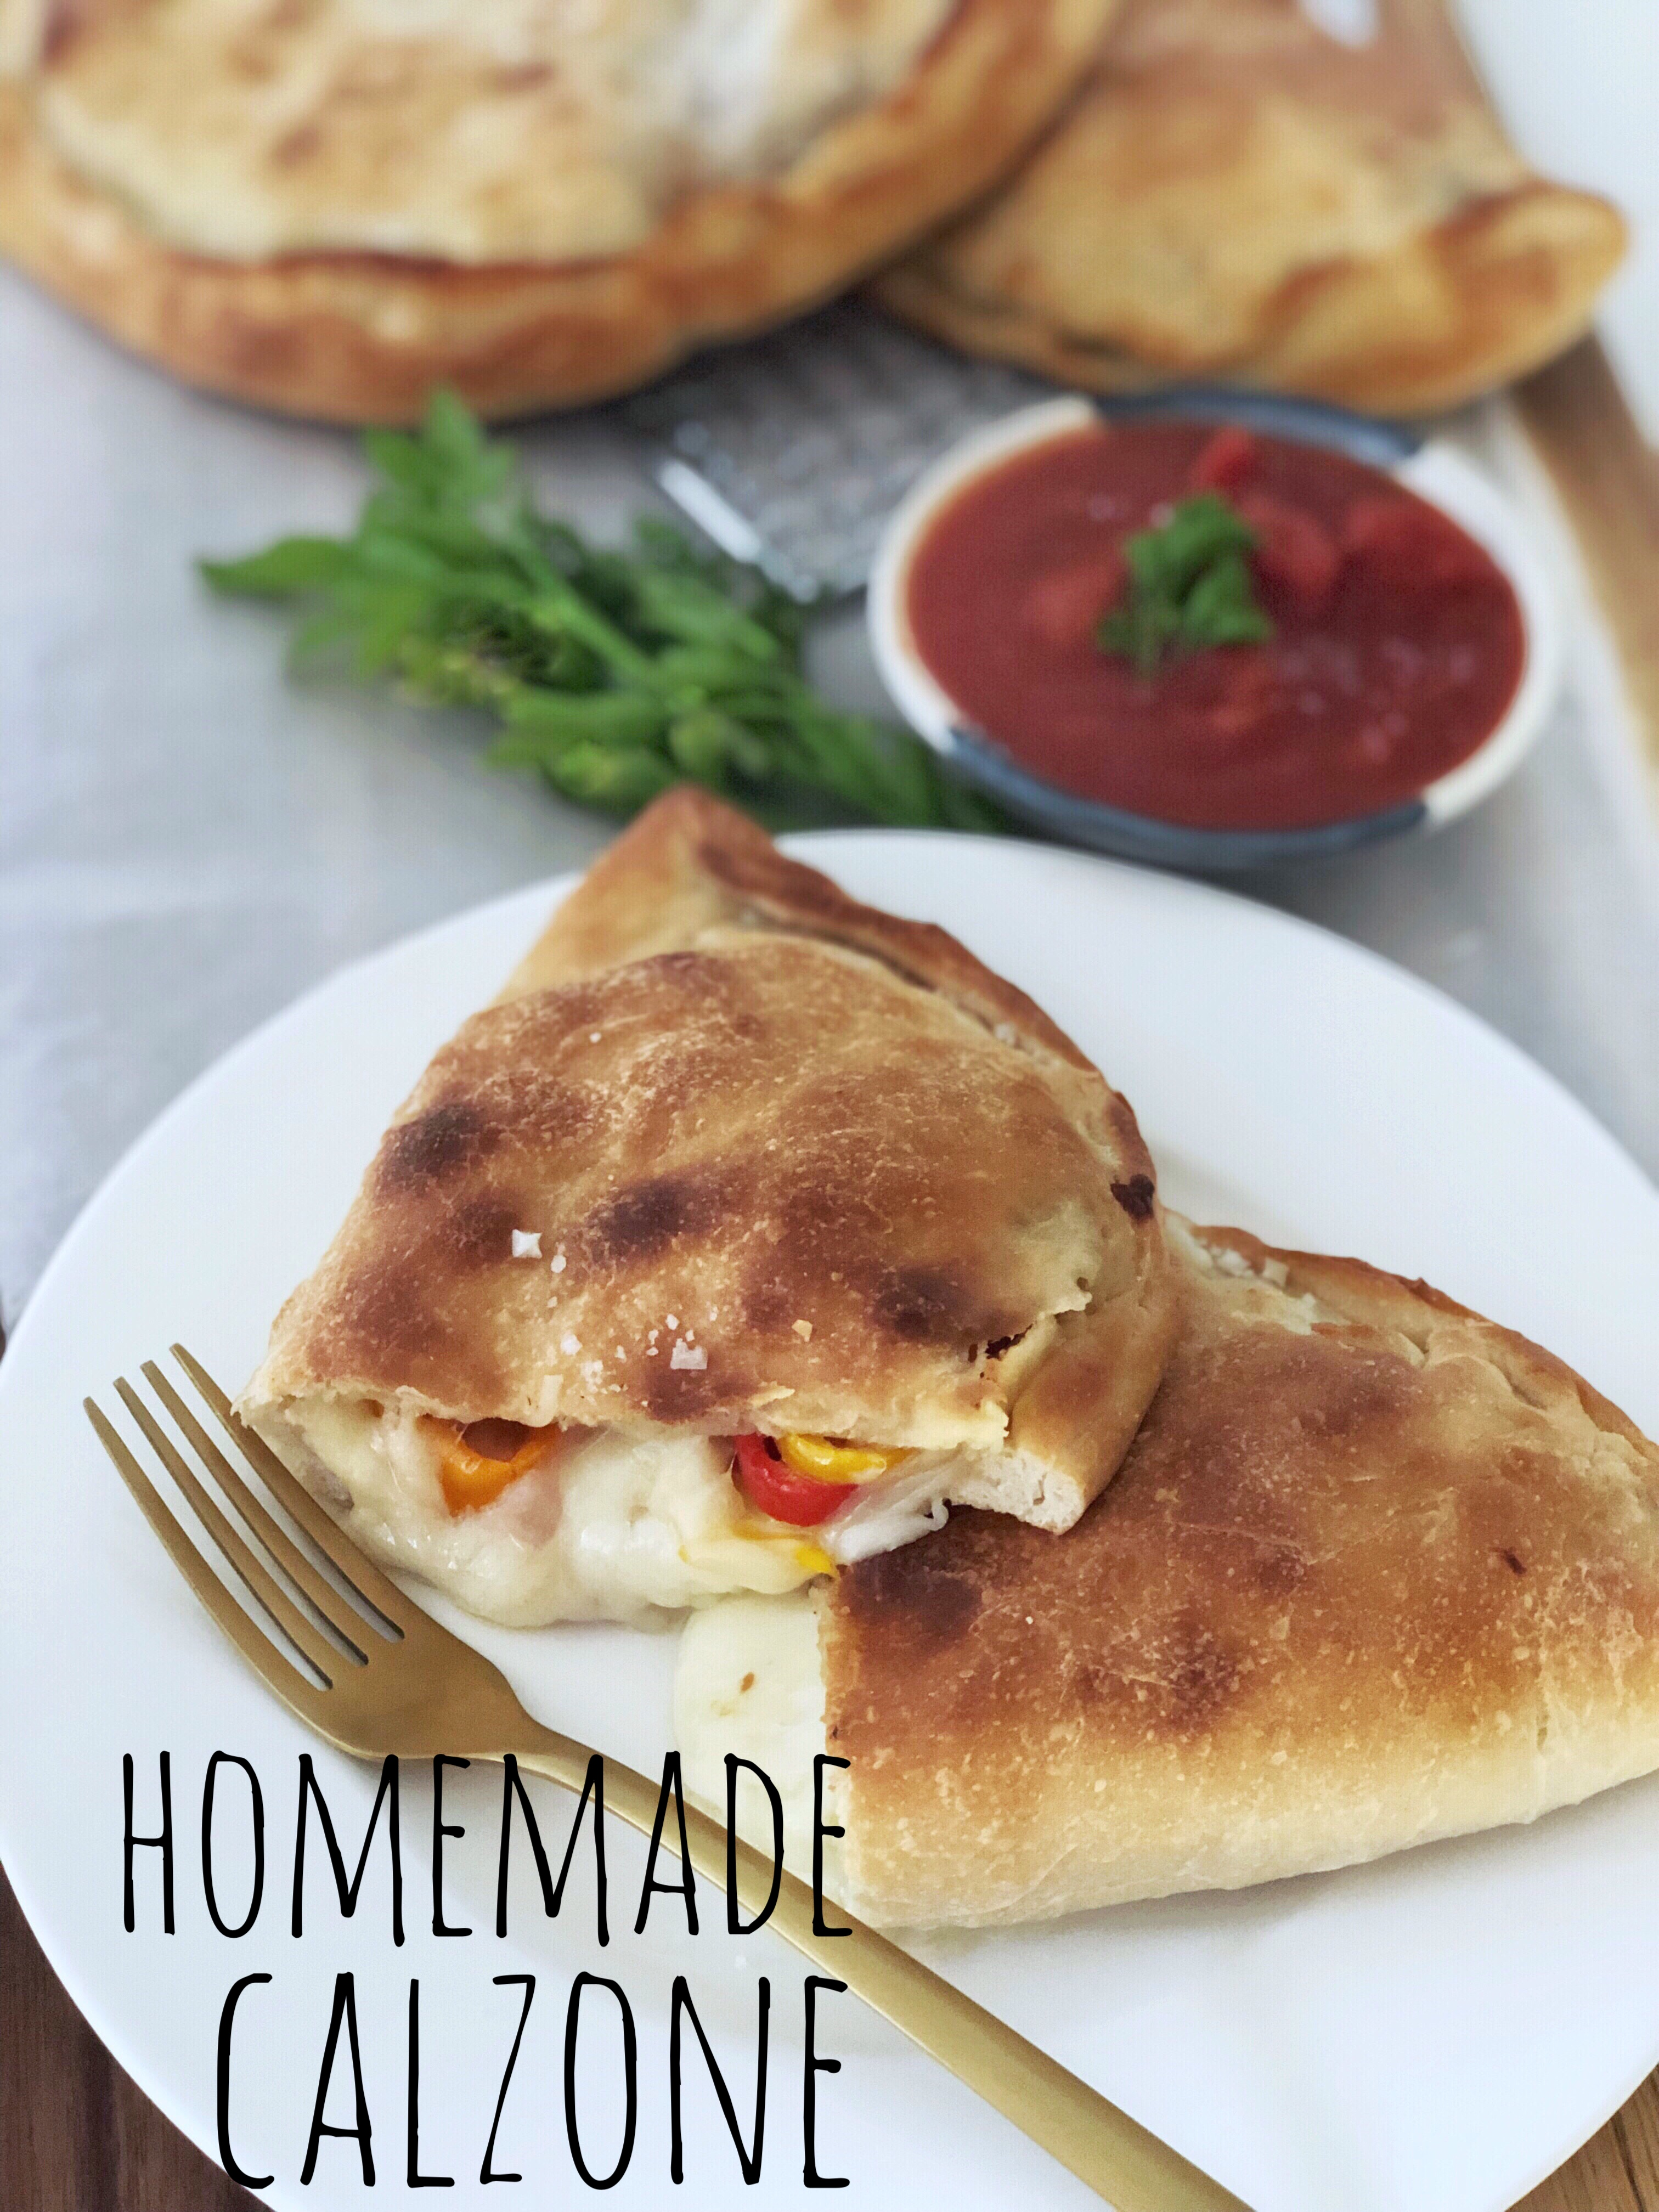 Homemade Calzone stuffed with Mozzarella, meat and vegetables